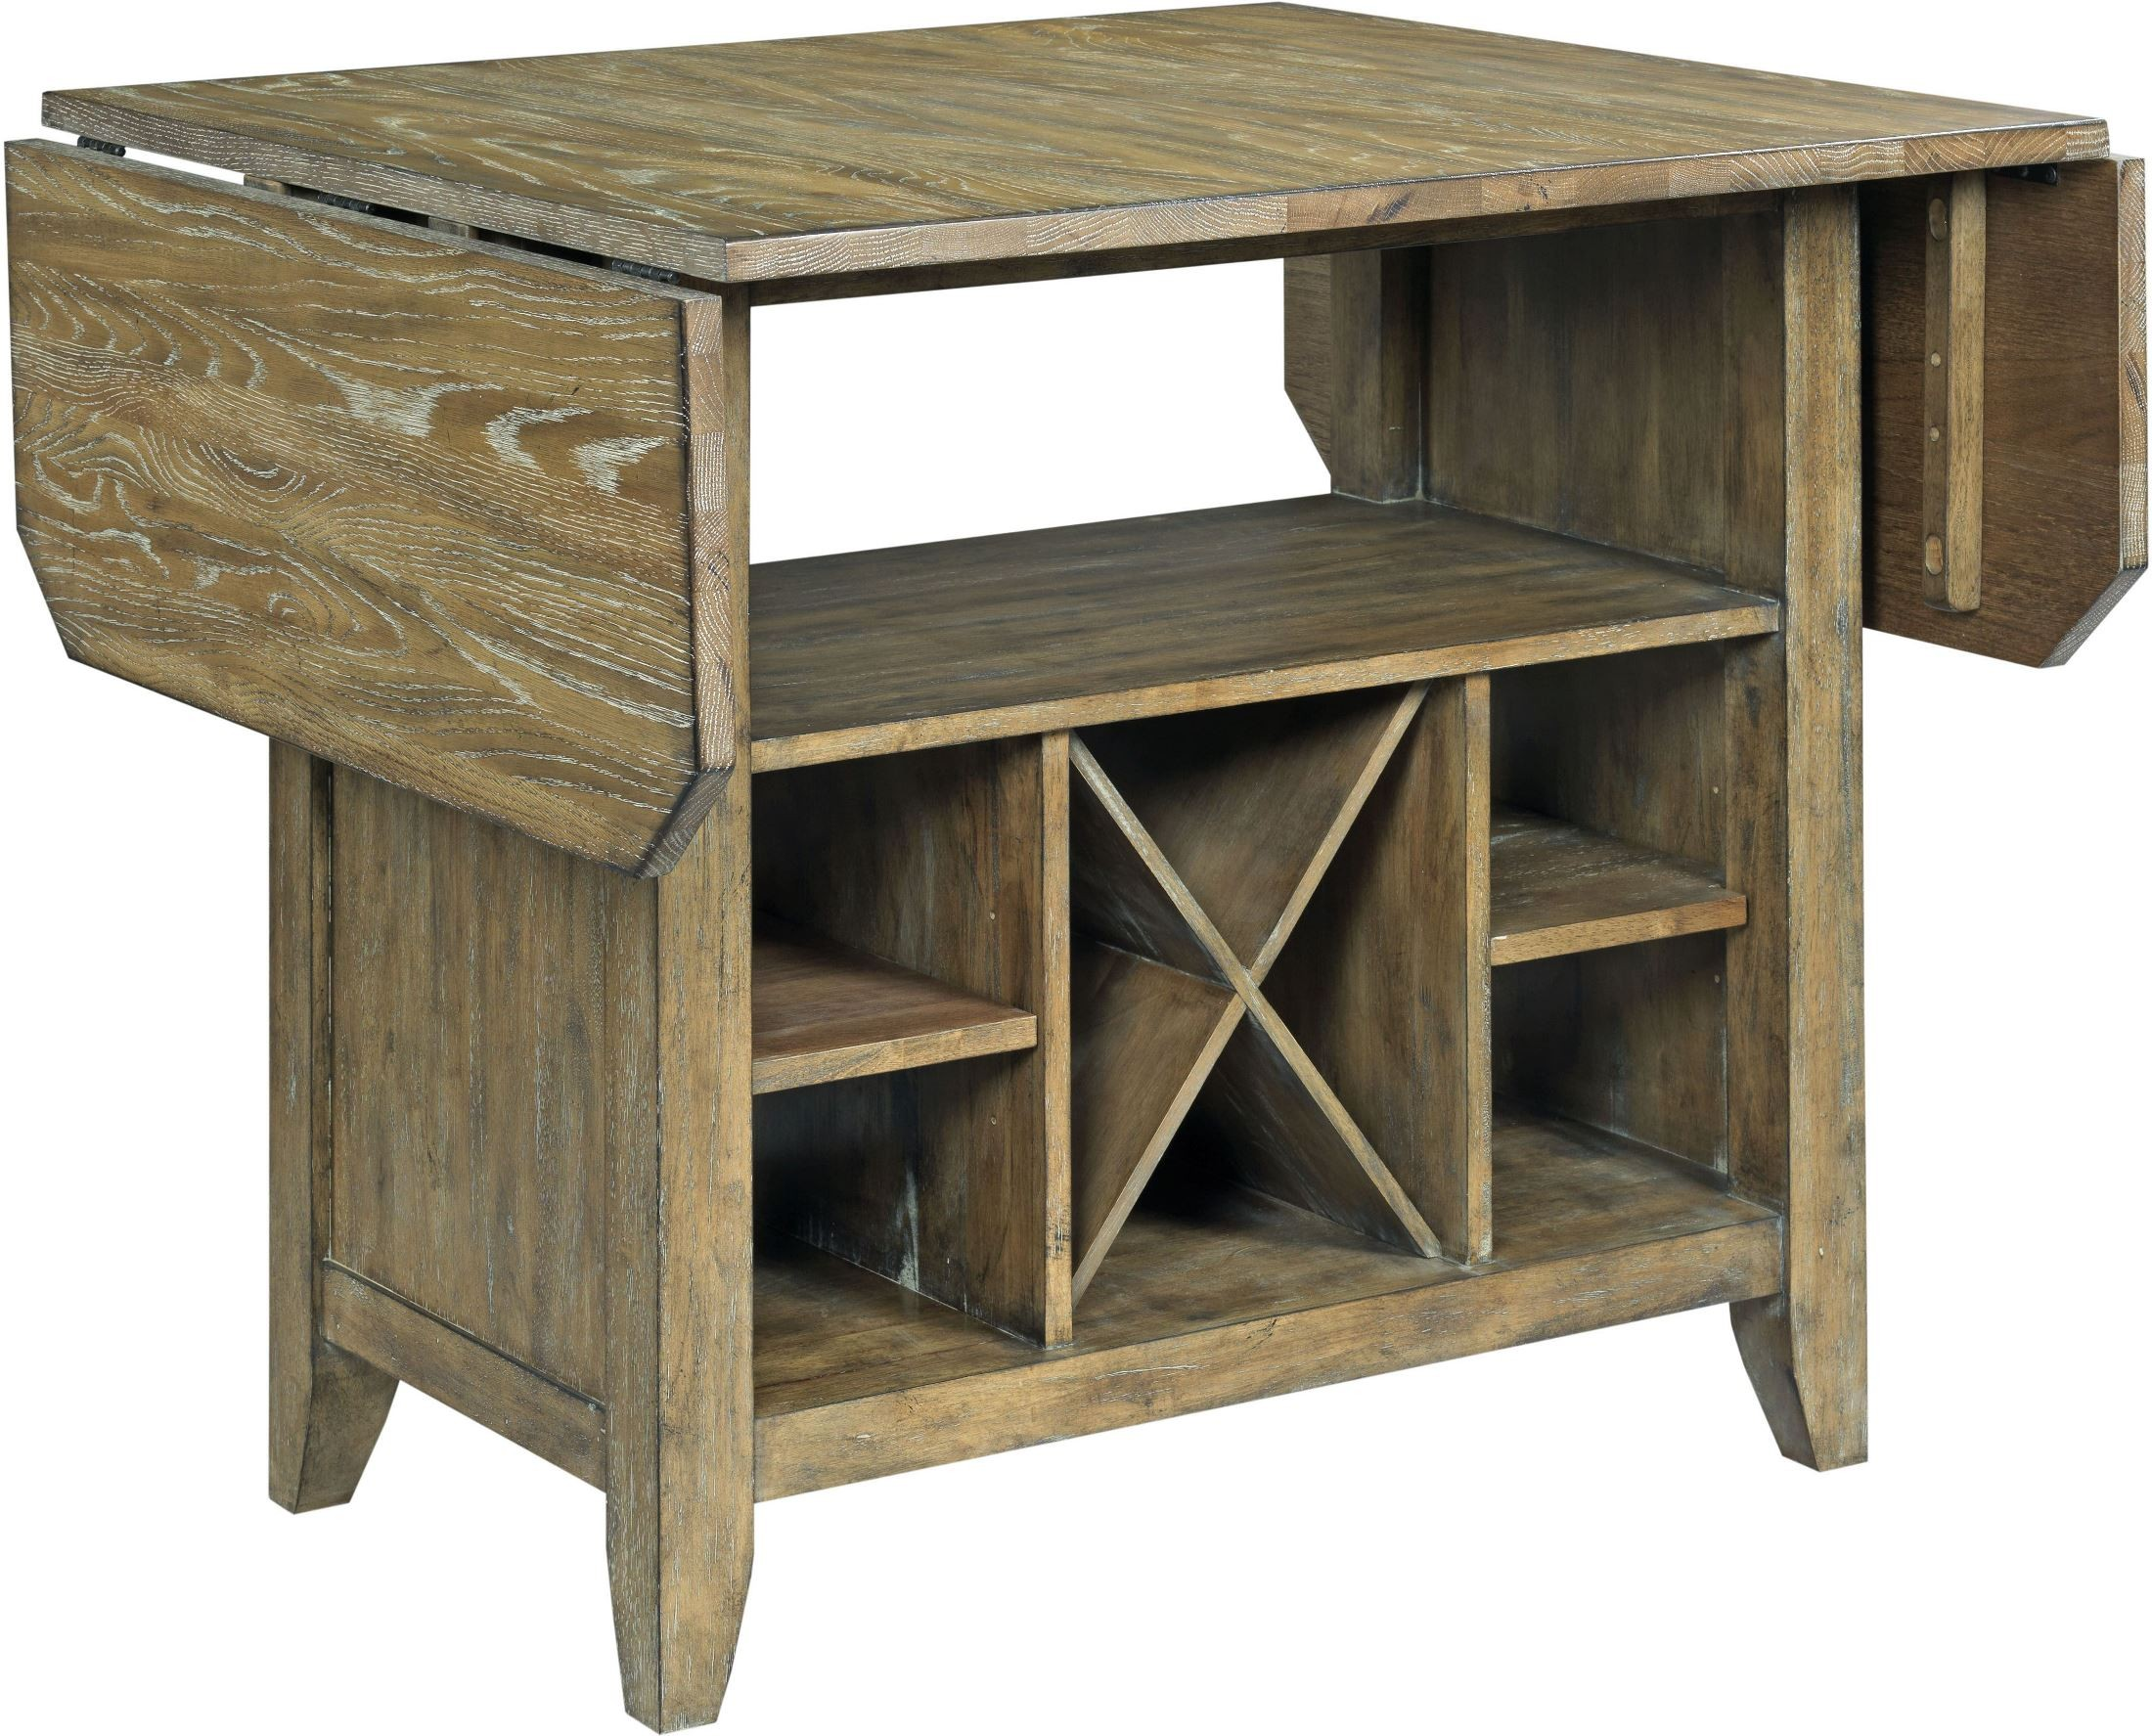 The Nook Oak Kitchen Island From Kincaid Furniture